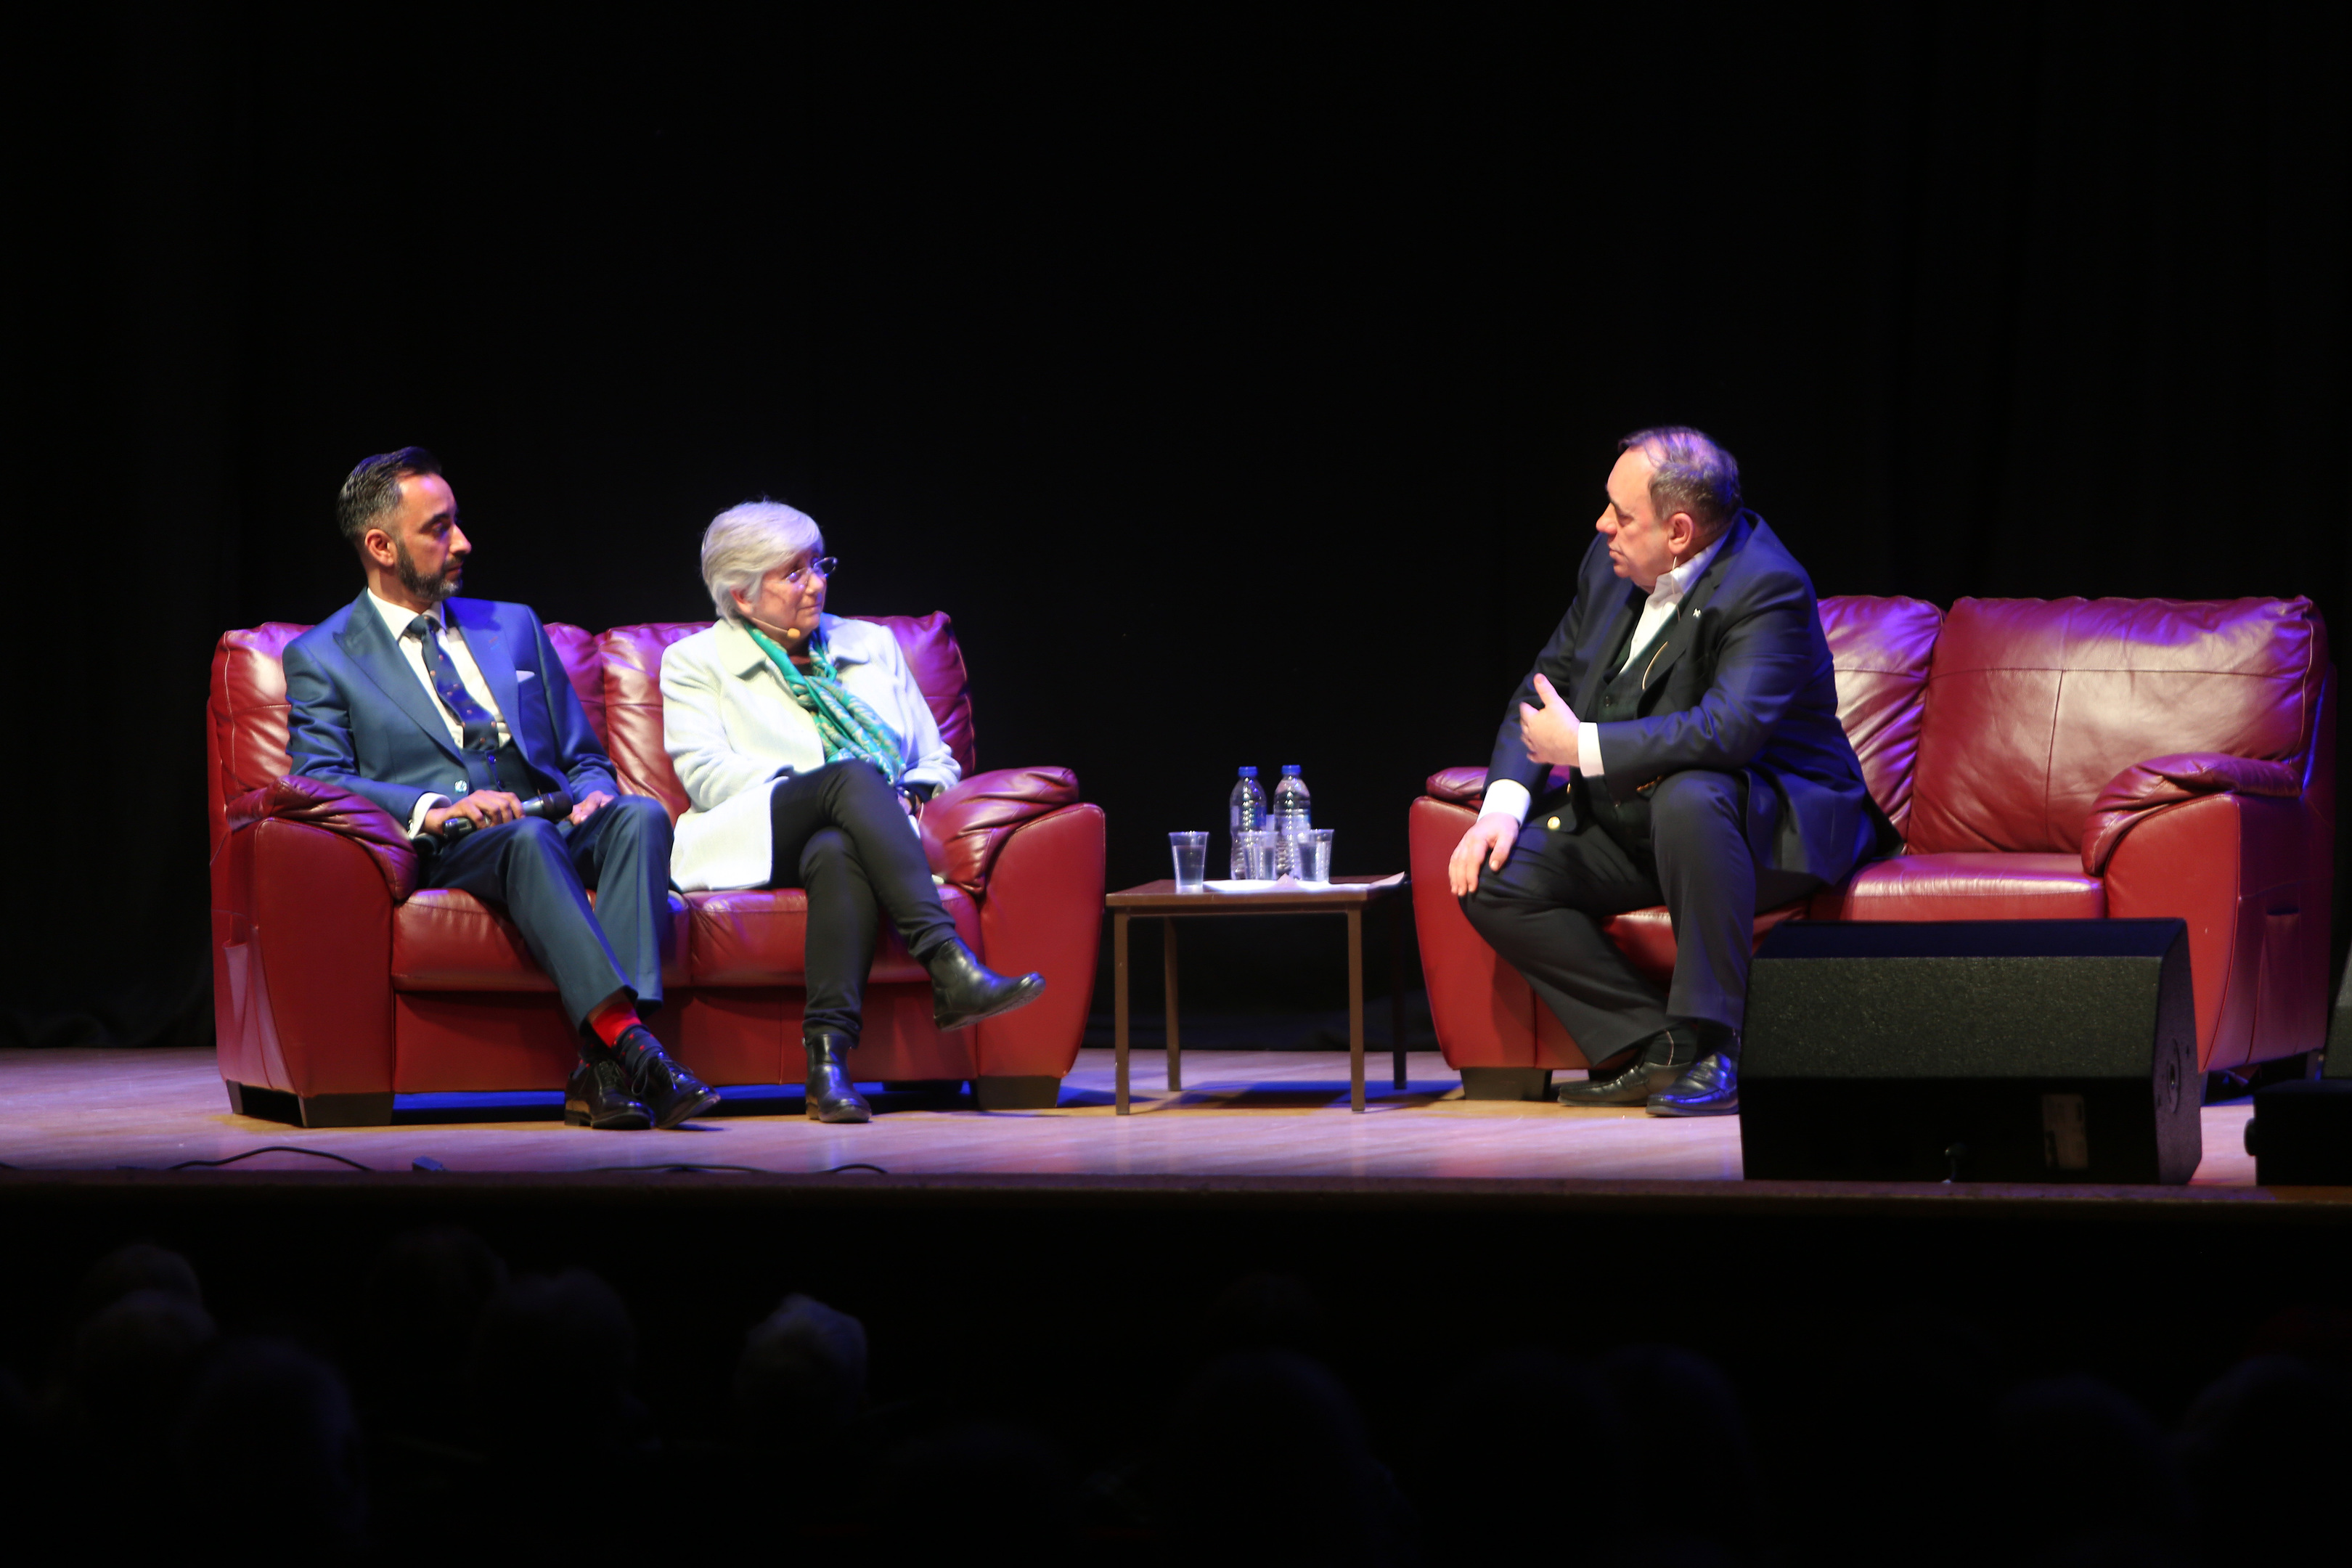 Alex Salmond on stage with Prof Clara Ponsati (Catelonia politician and St Andrews Uni lecturer) and her legal representative Aamar Anwar at Caird Hall, Dundee.